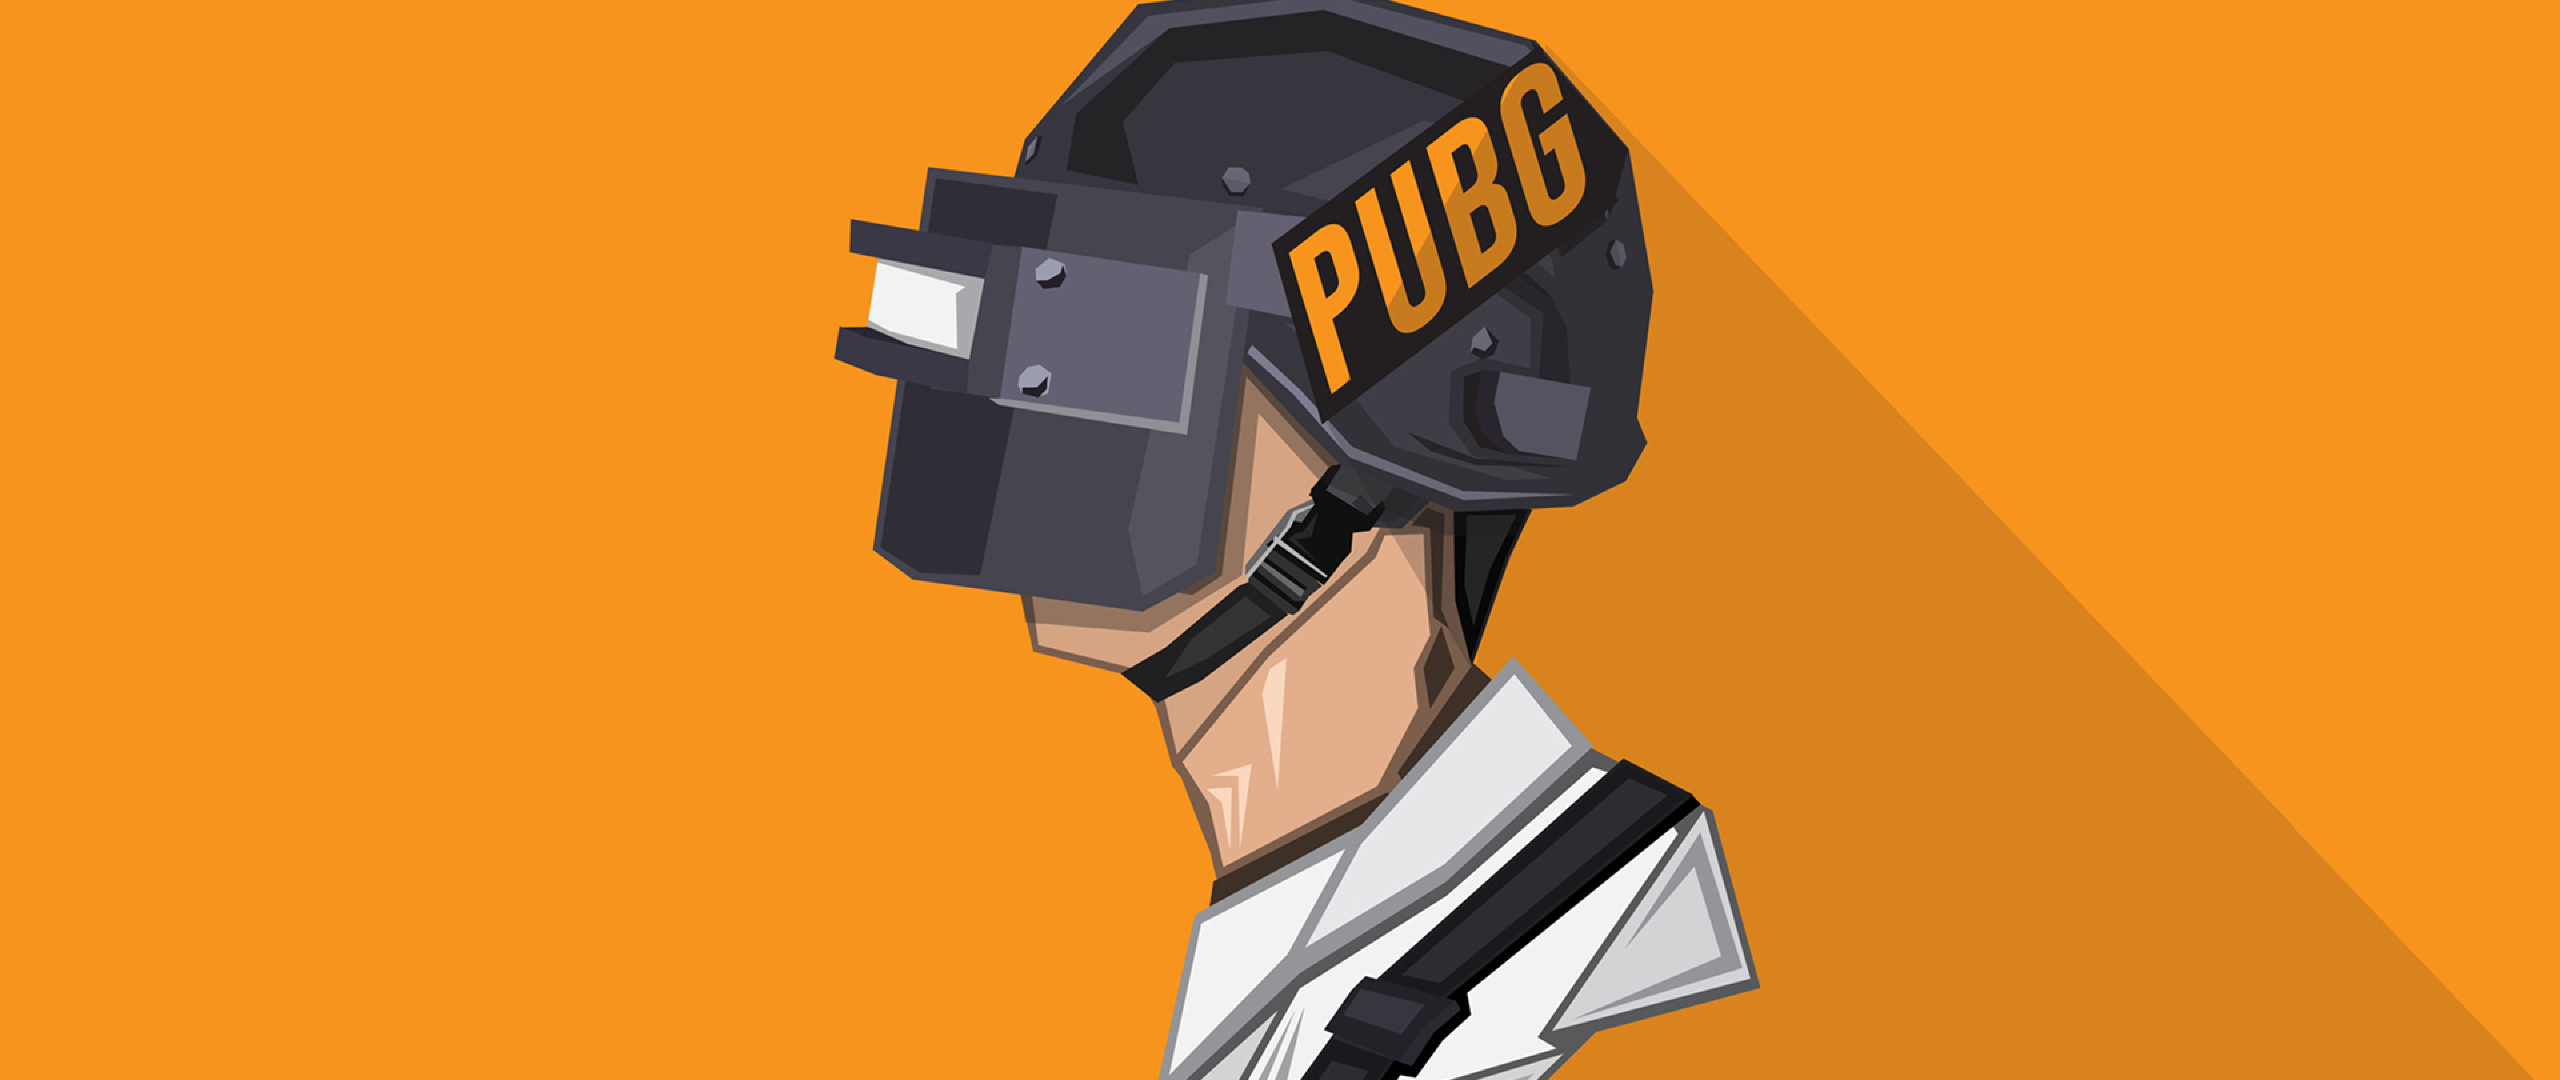 Wallpaper Pubg Minmlist: Download Pubg Minimalist Pophead 7680x4320 Resolution